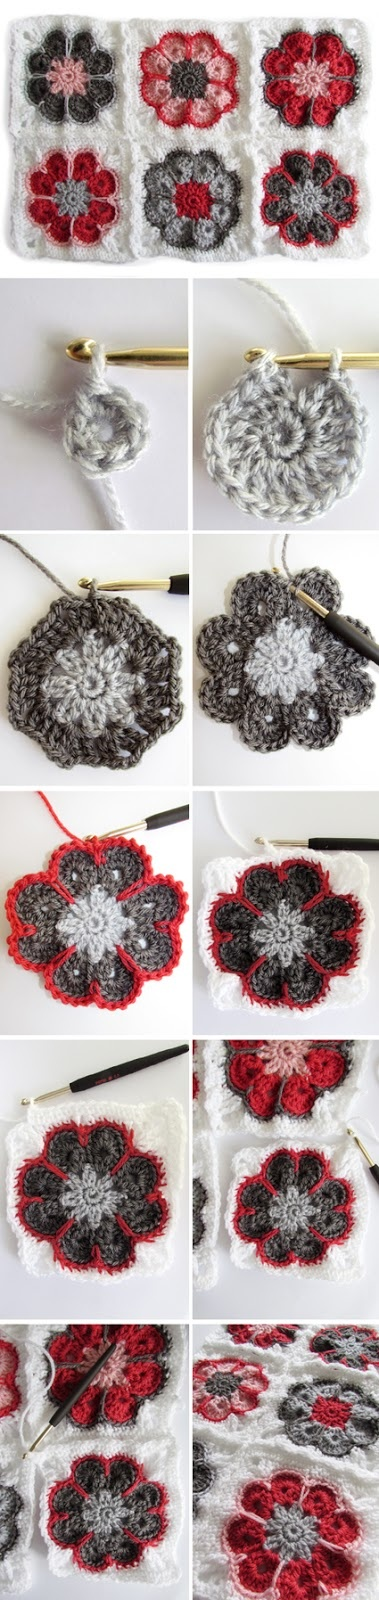 Granny Square flower tutorial